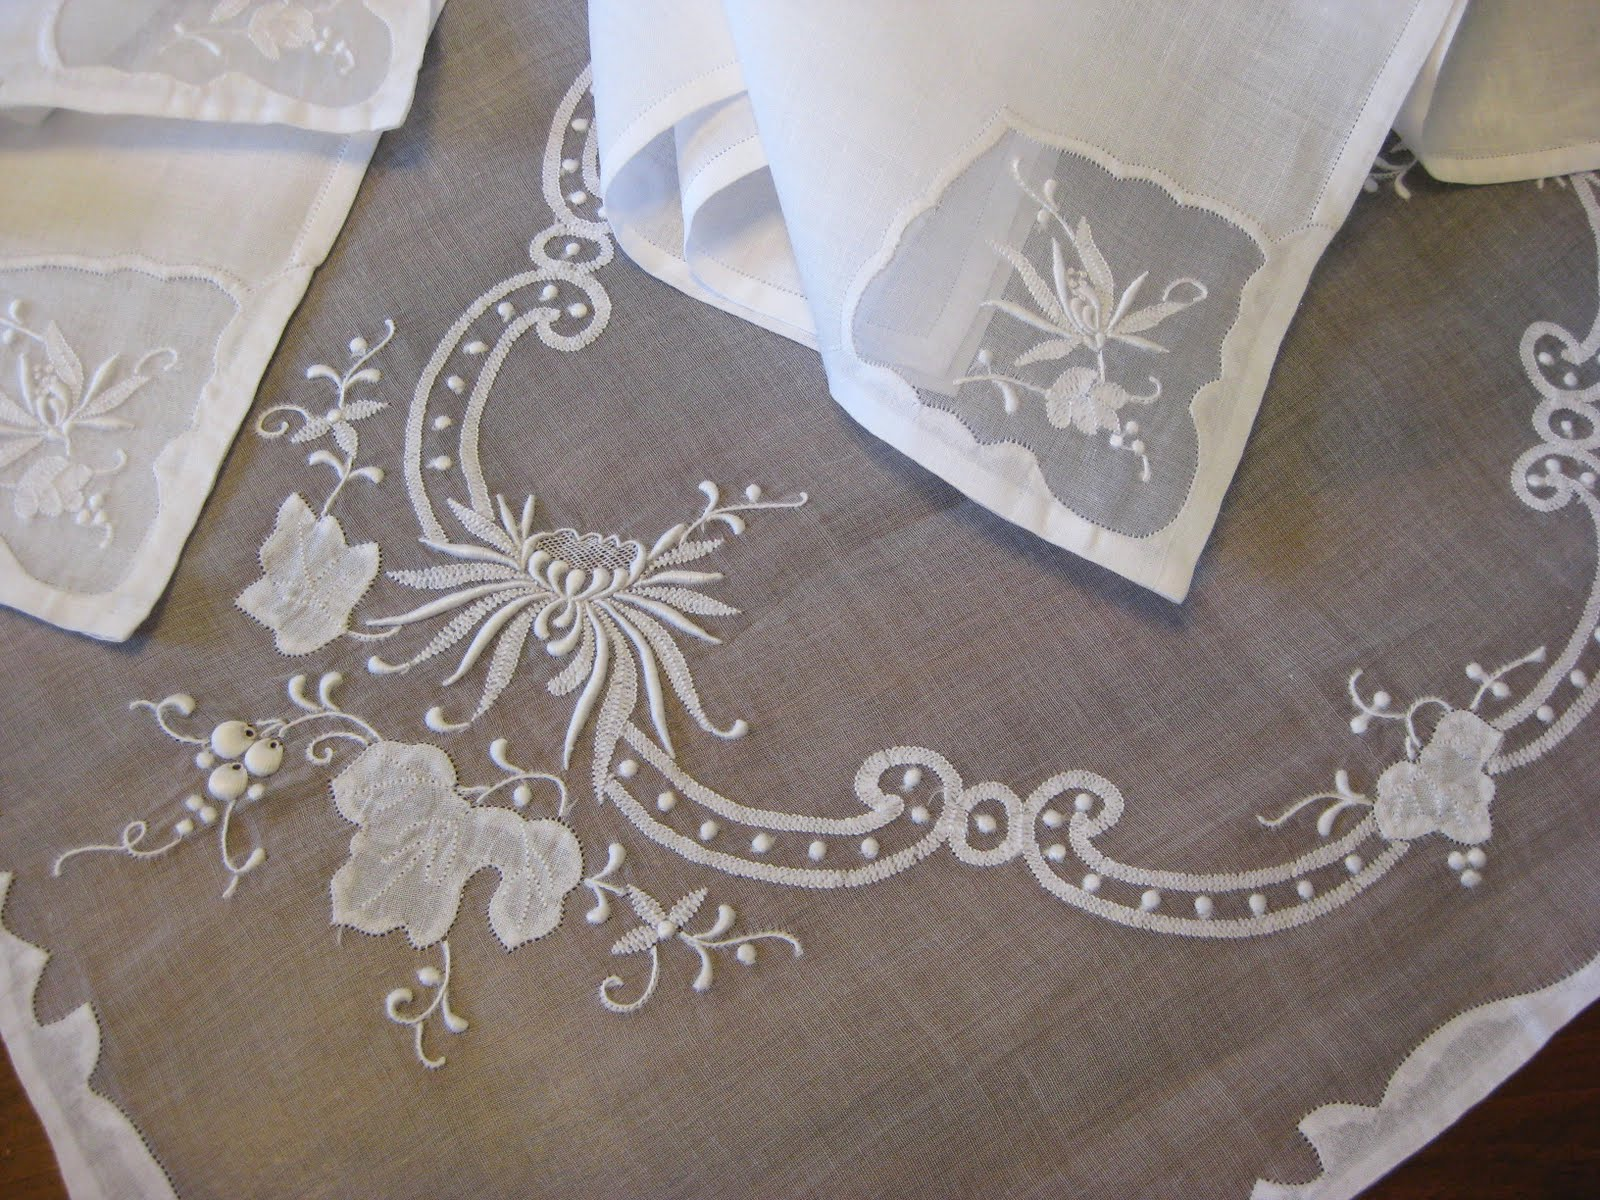 Merveilleux ~ Cider Antiques ~: Madeira Table Linens And Italian Lace